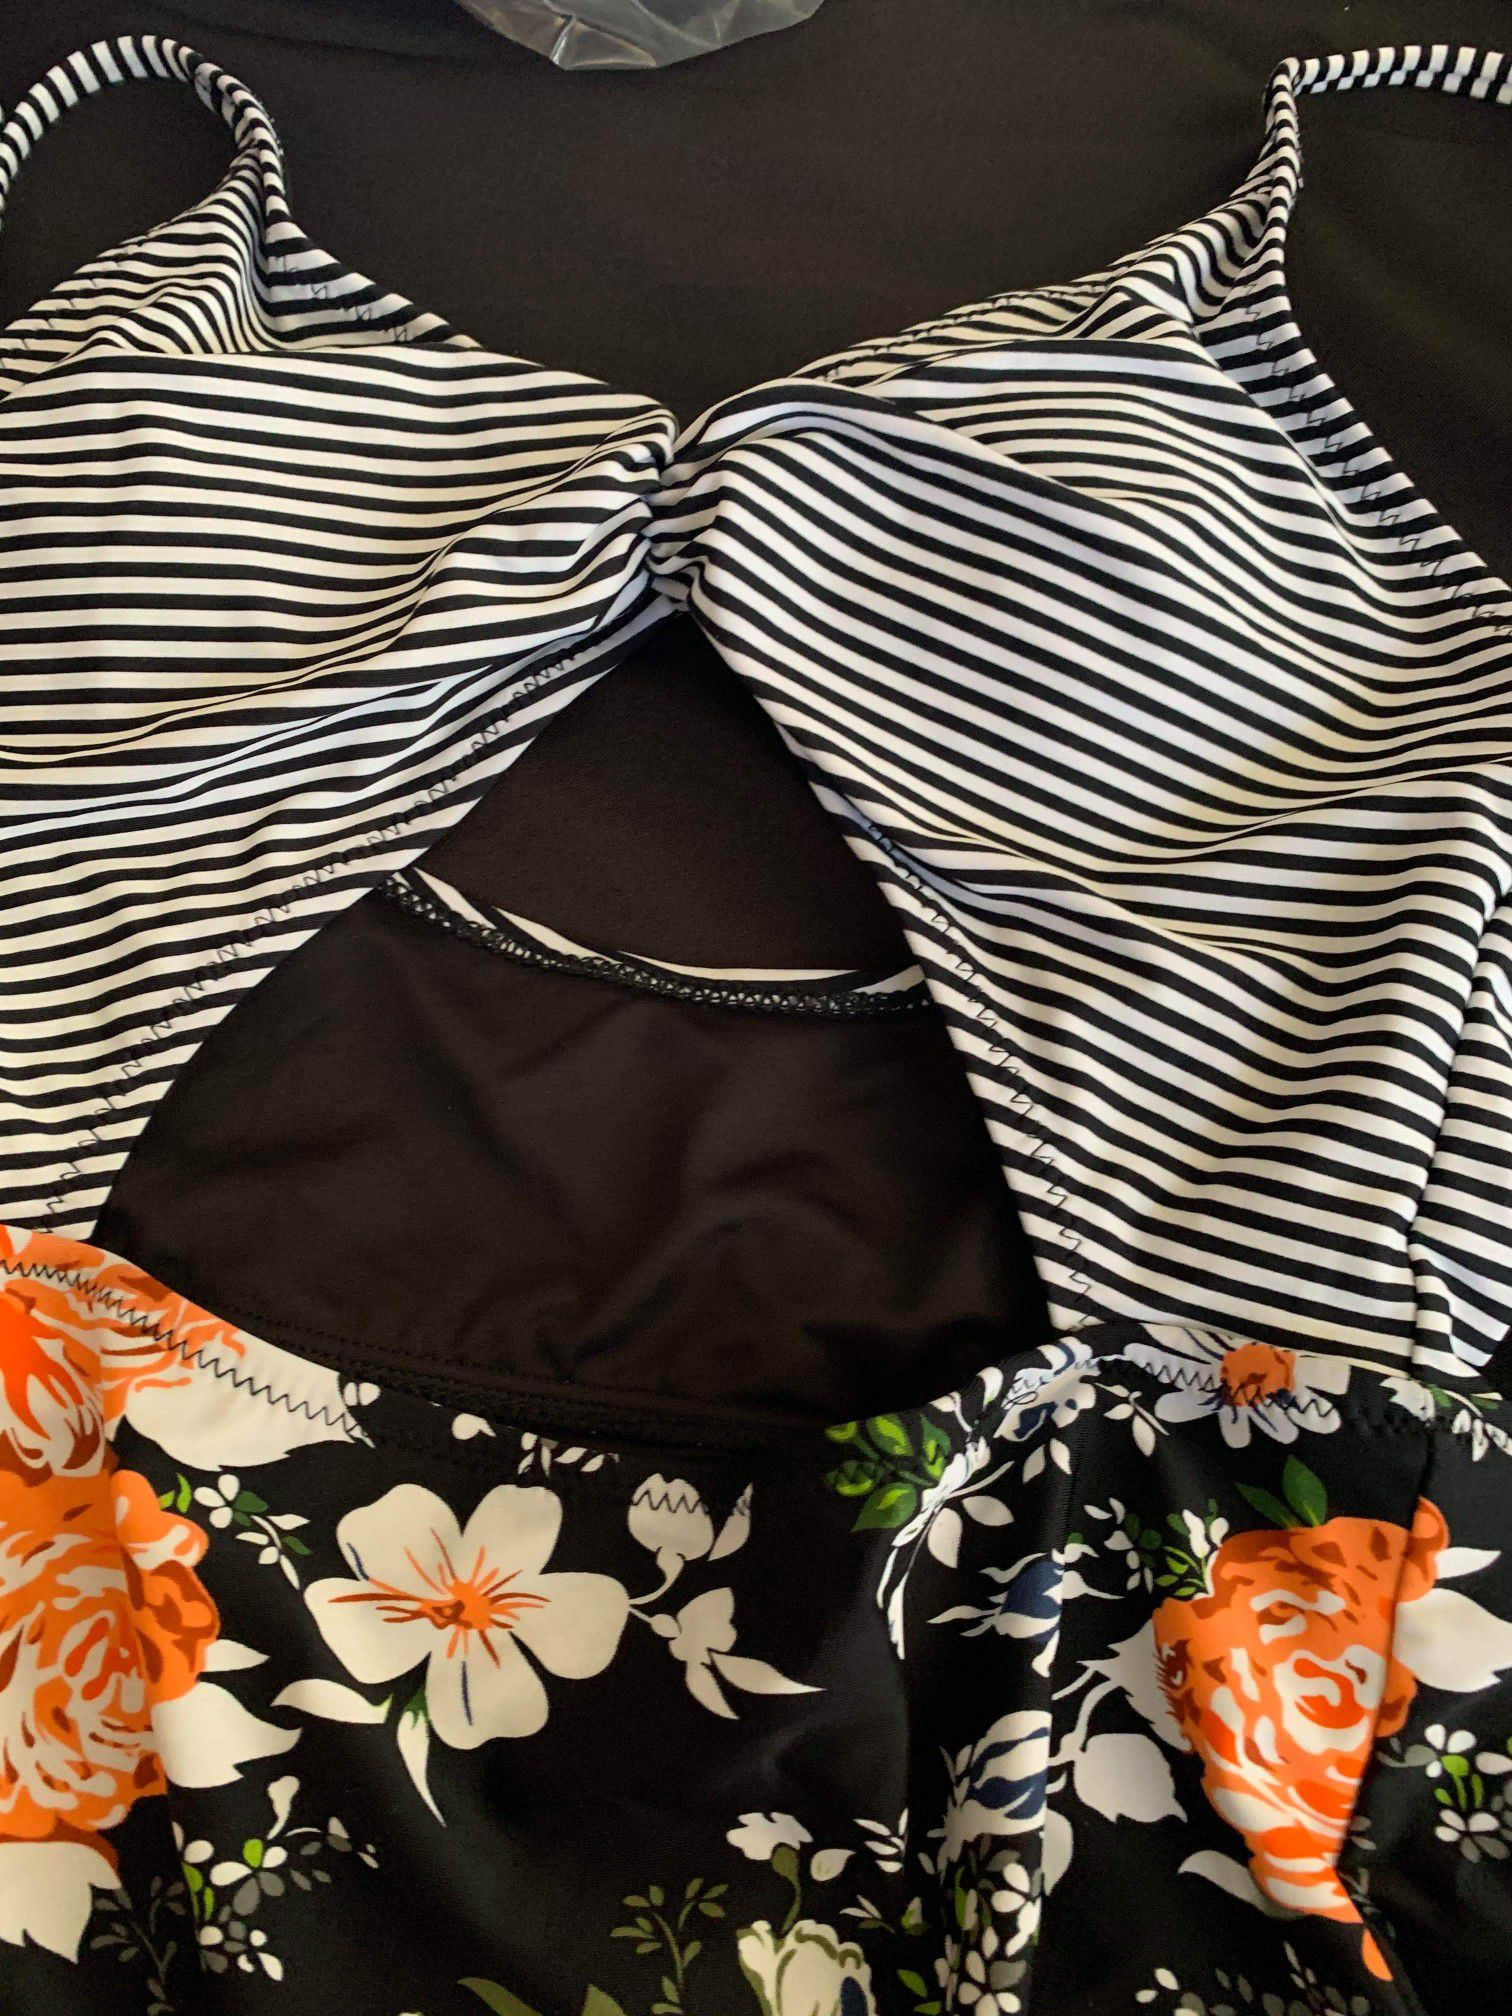 Swimsuit size small $15